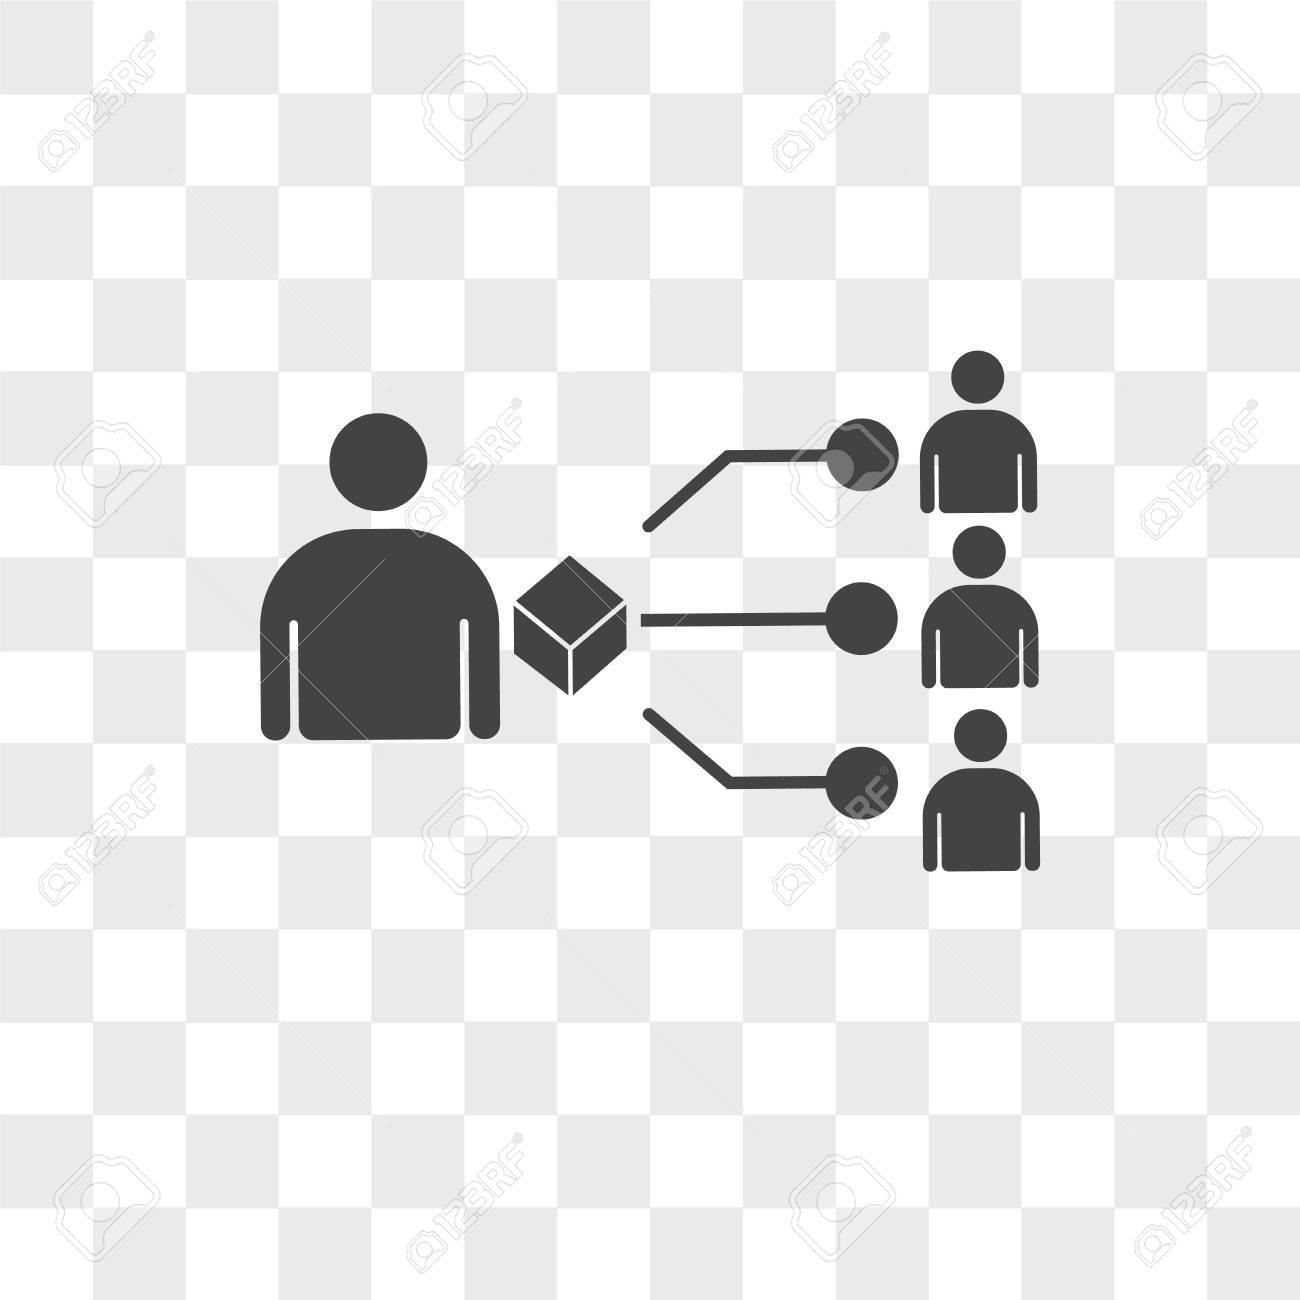 supplier vector icon isolated on transparent background, supplier logo concept - 108881851